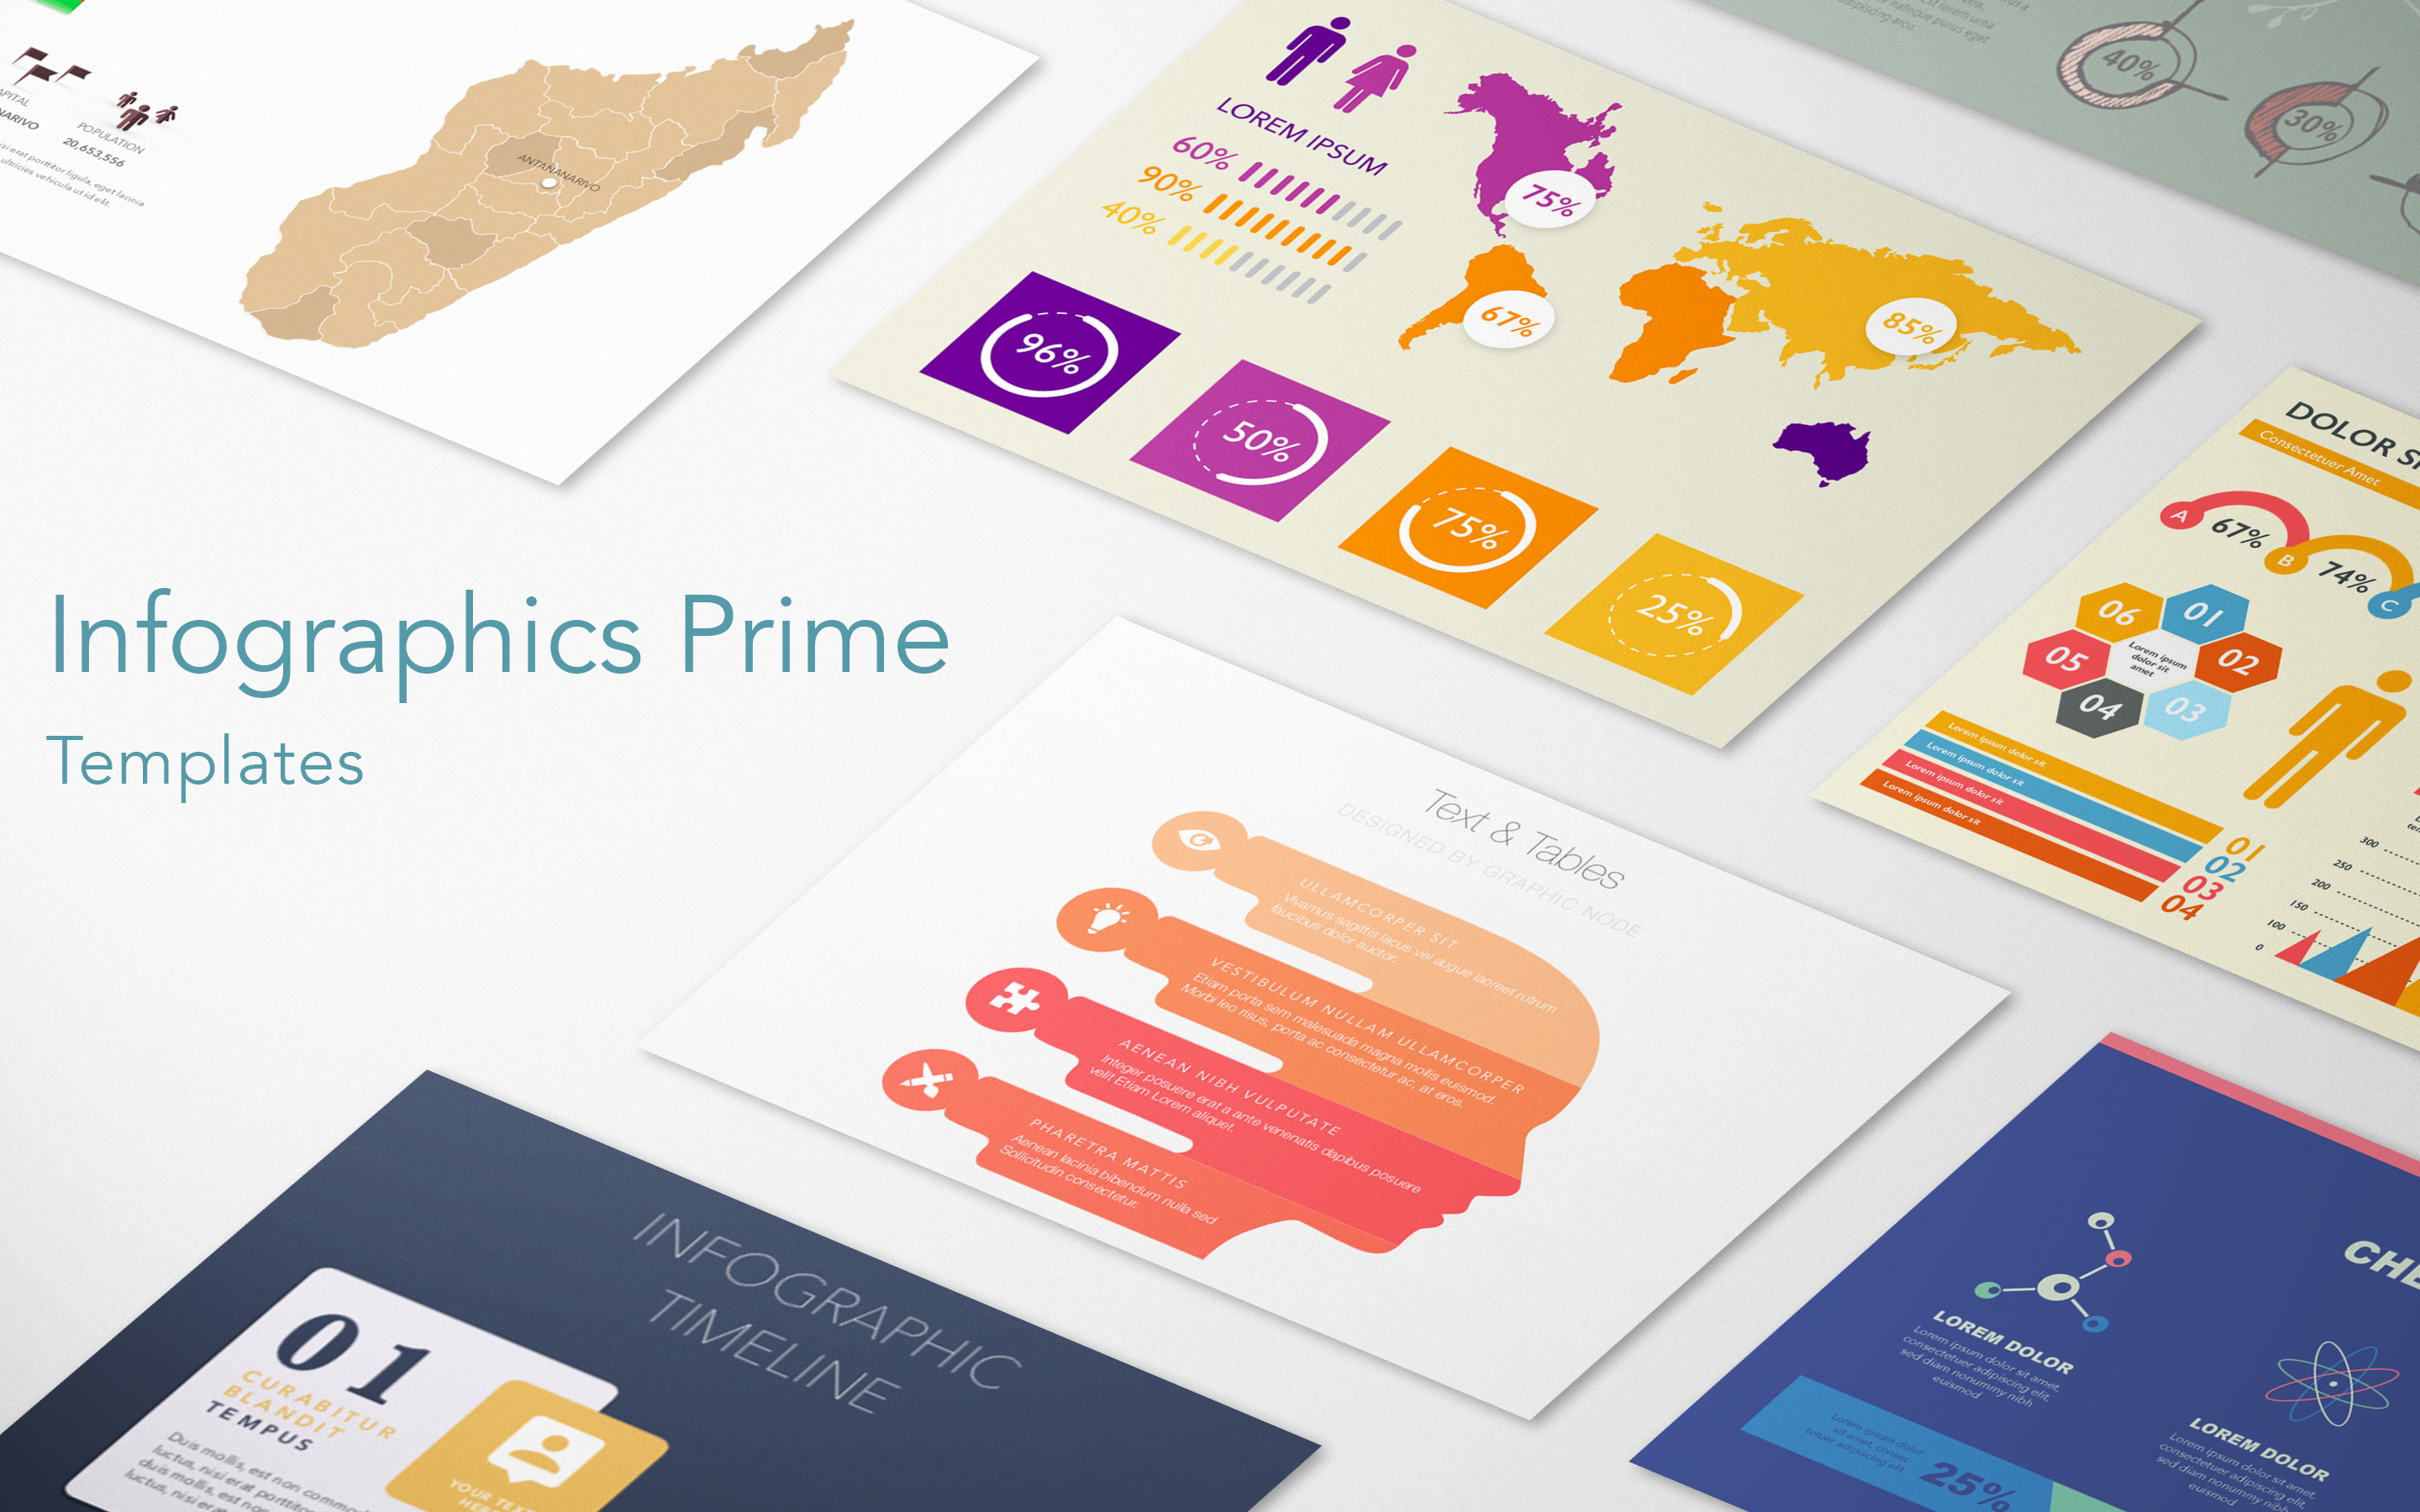 Graphic Node hit on infographic with the new Infographics Prime Mac app Image